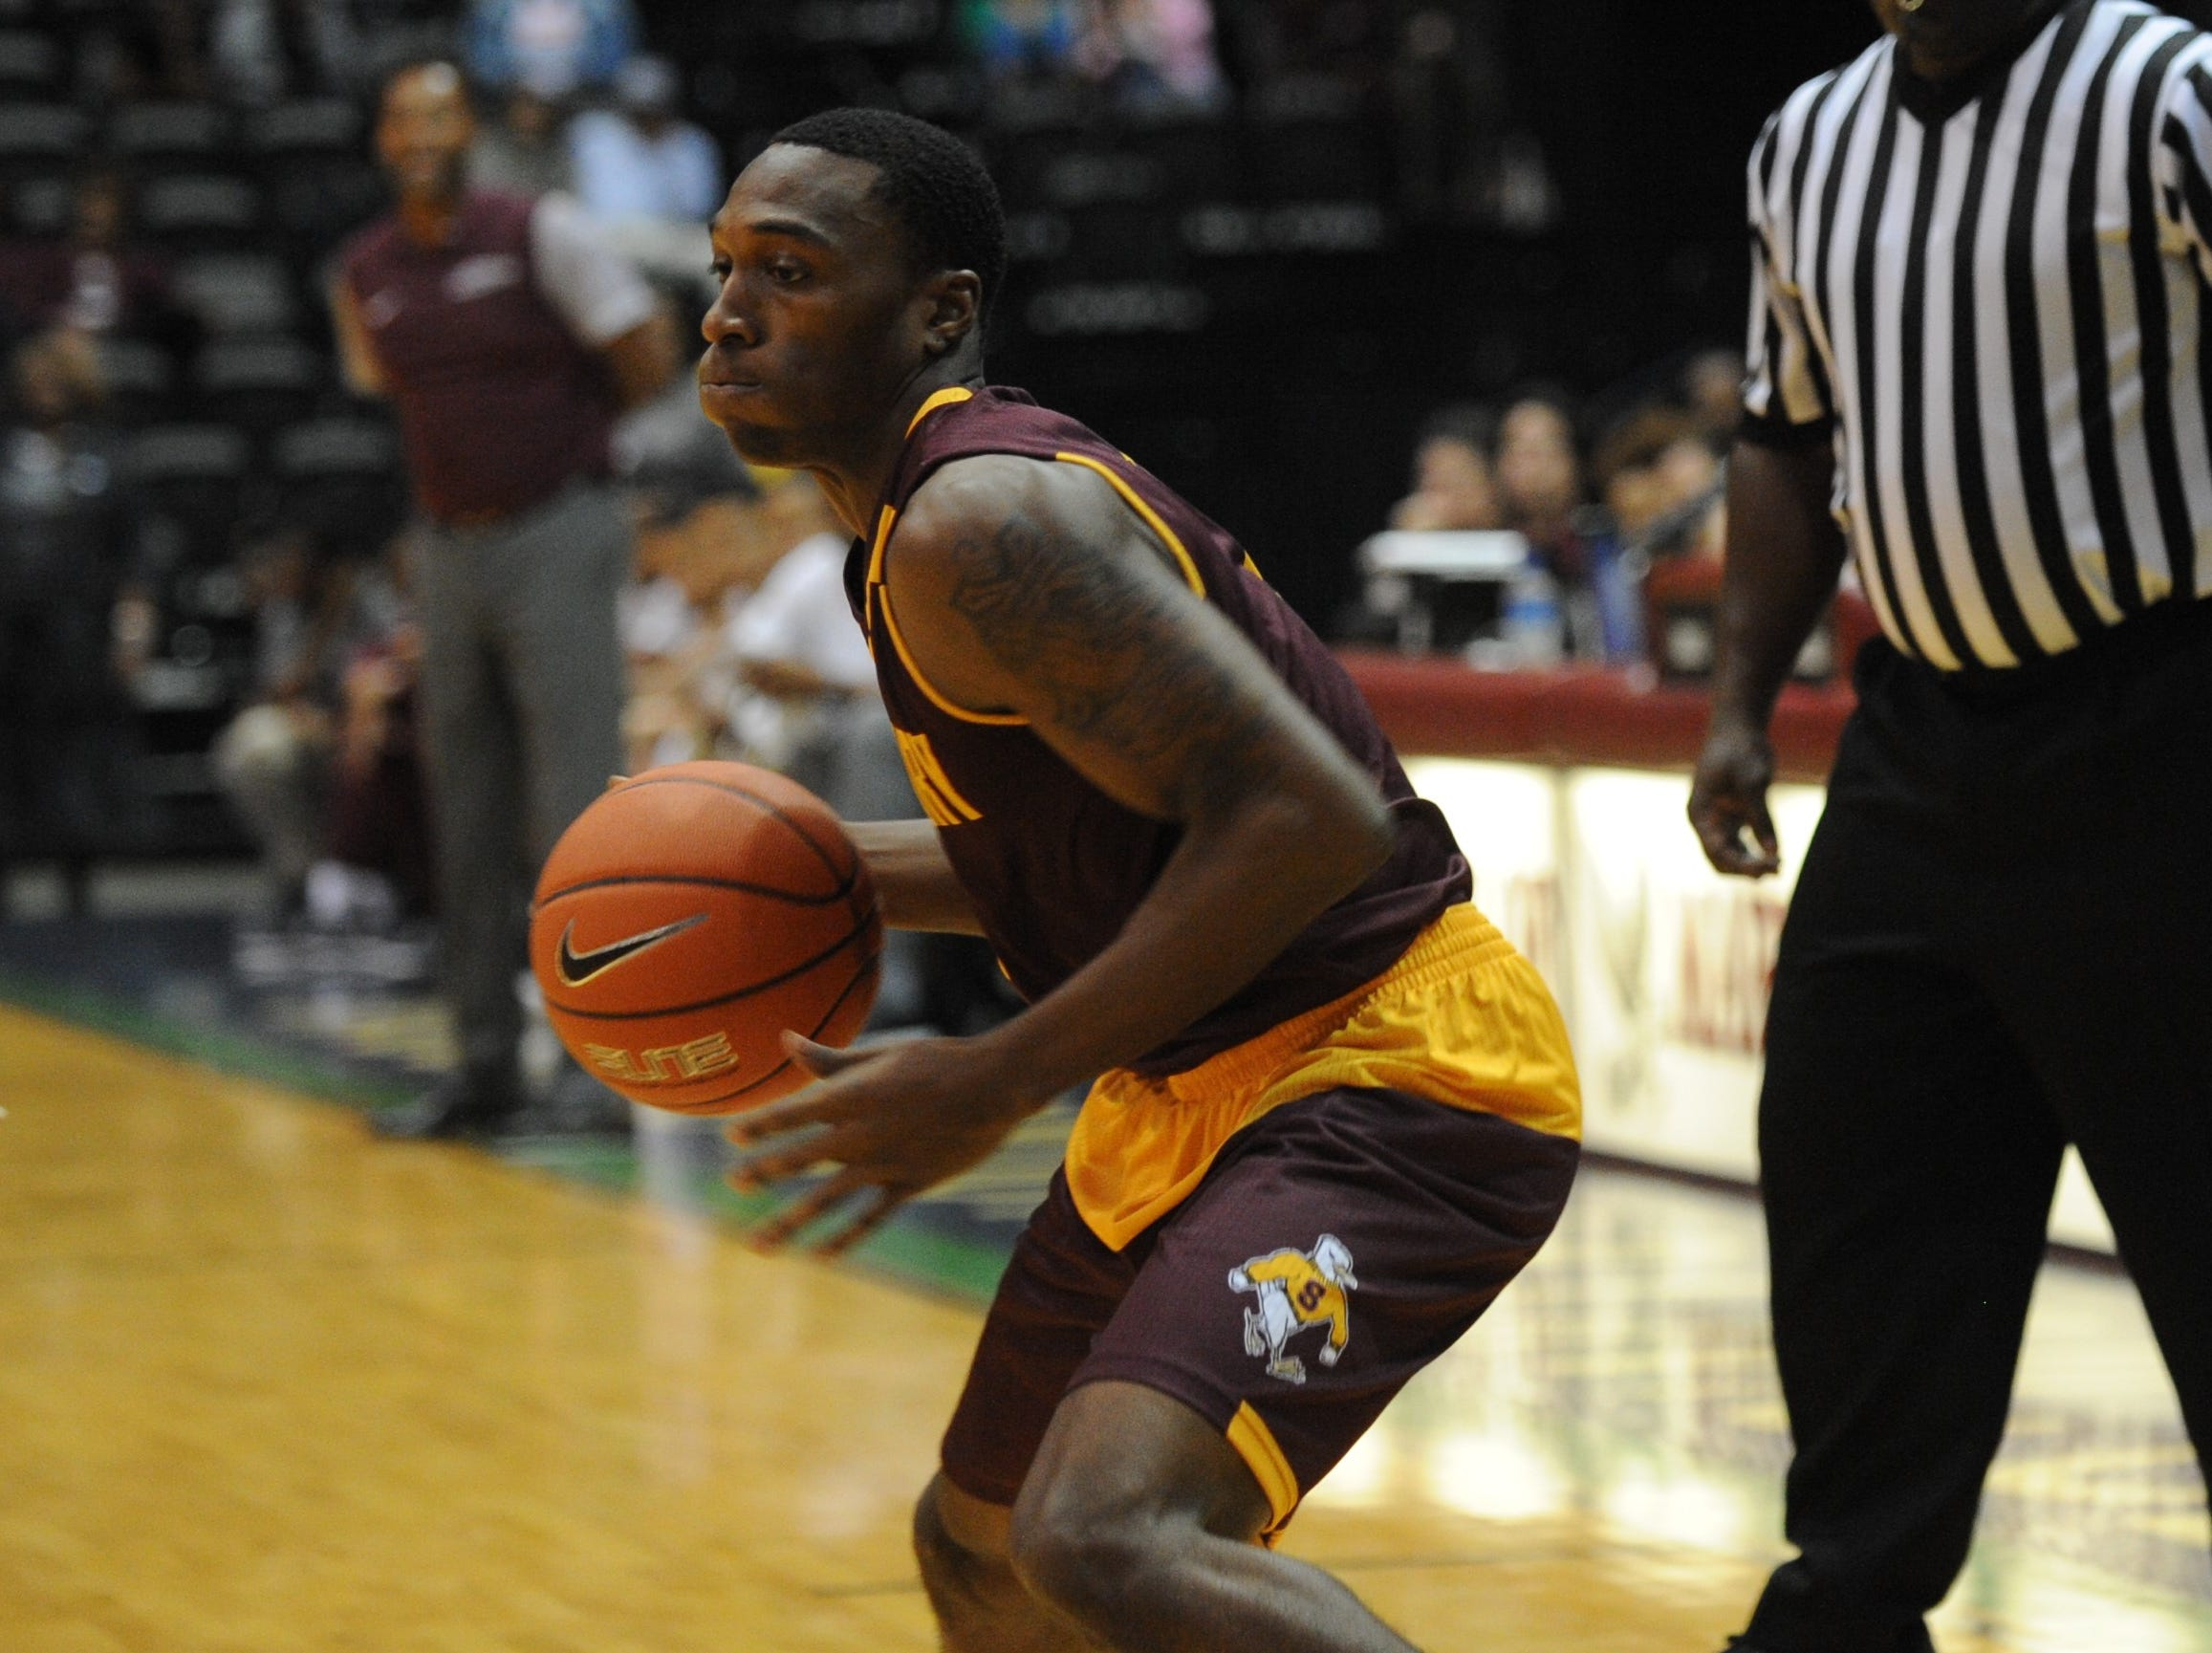 Salisbury University guard Gary Briddell dribbles the ball in the corner against the University of Maryland Eastern Shore during the 10-Mile Tipoff on Thursday, Nov. 1, 2018.